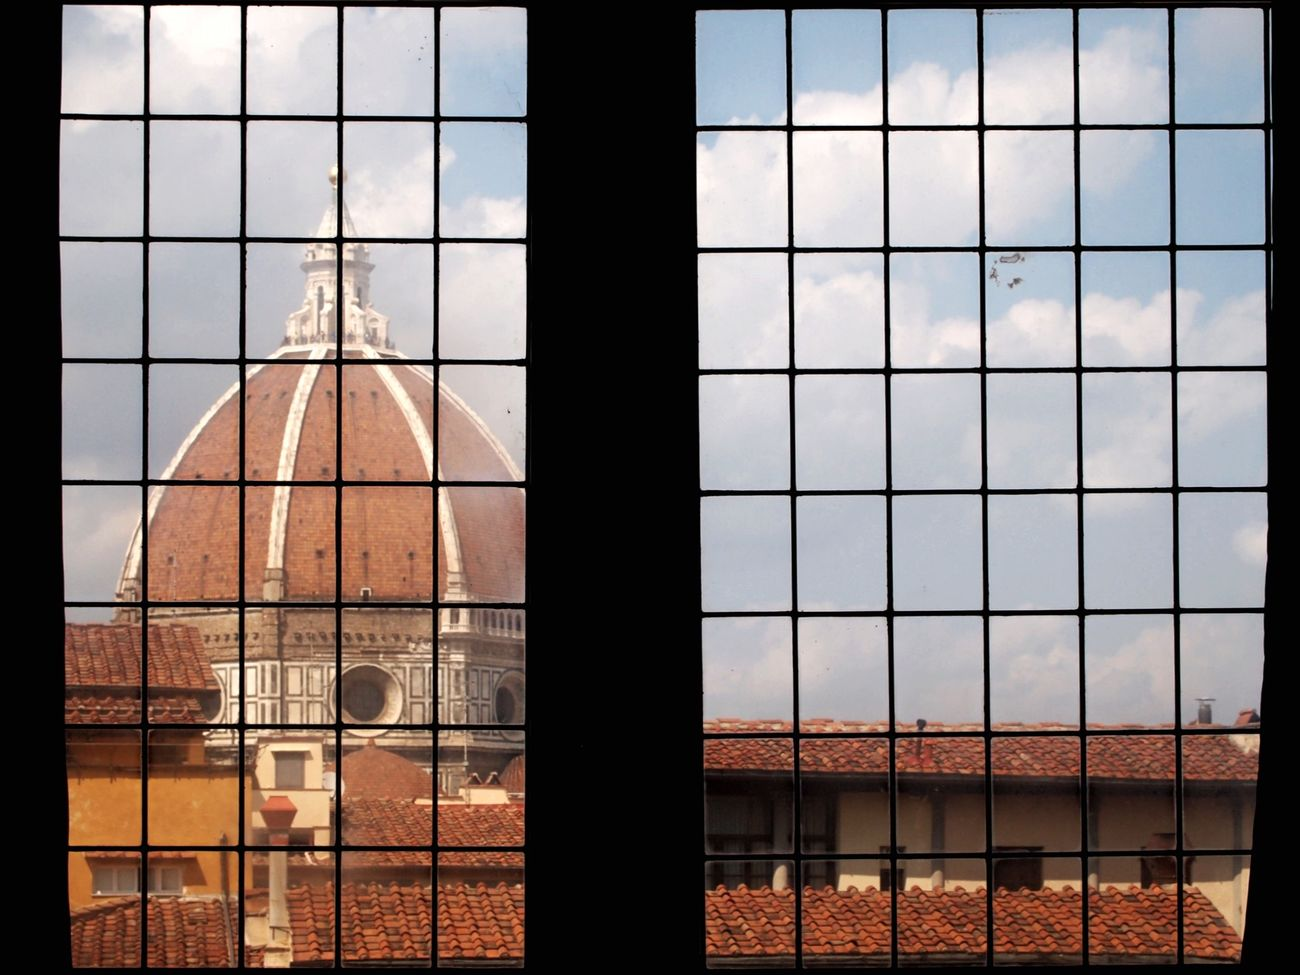 Through The Window The Duomo Florence Italy